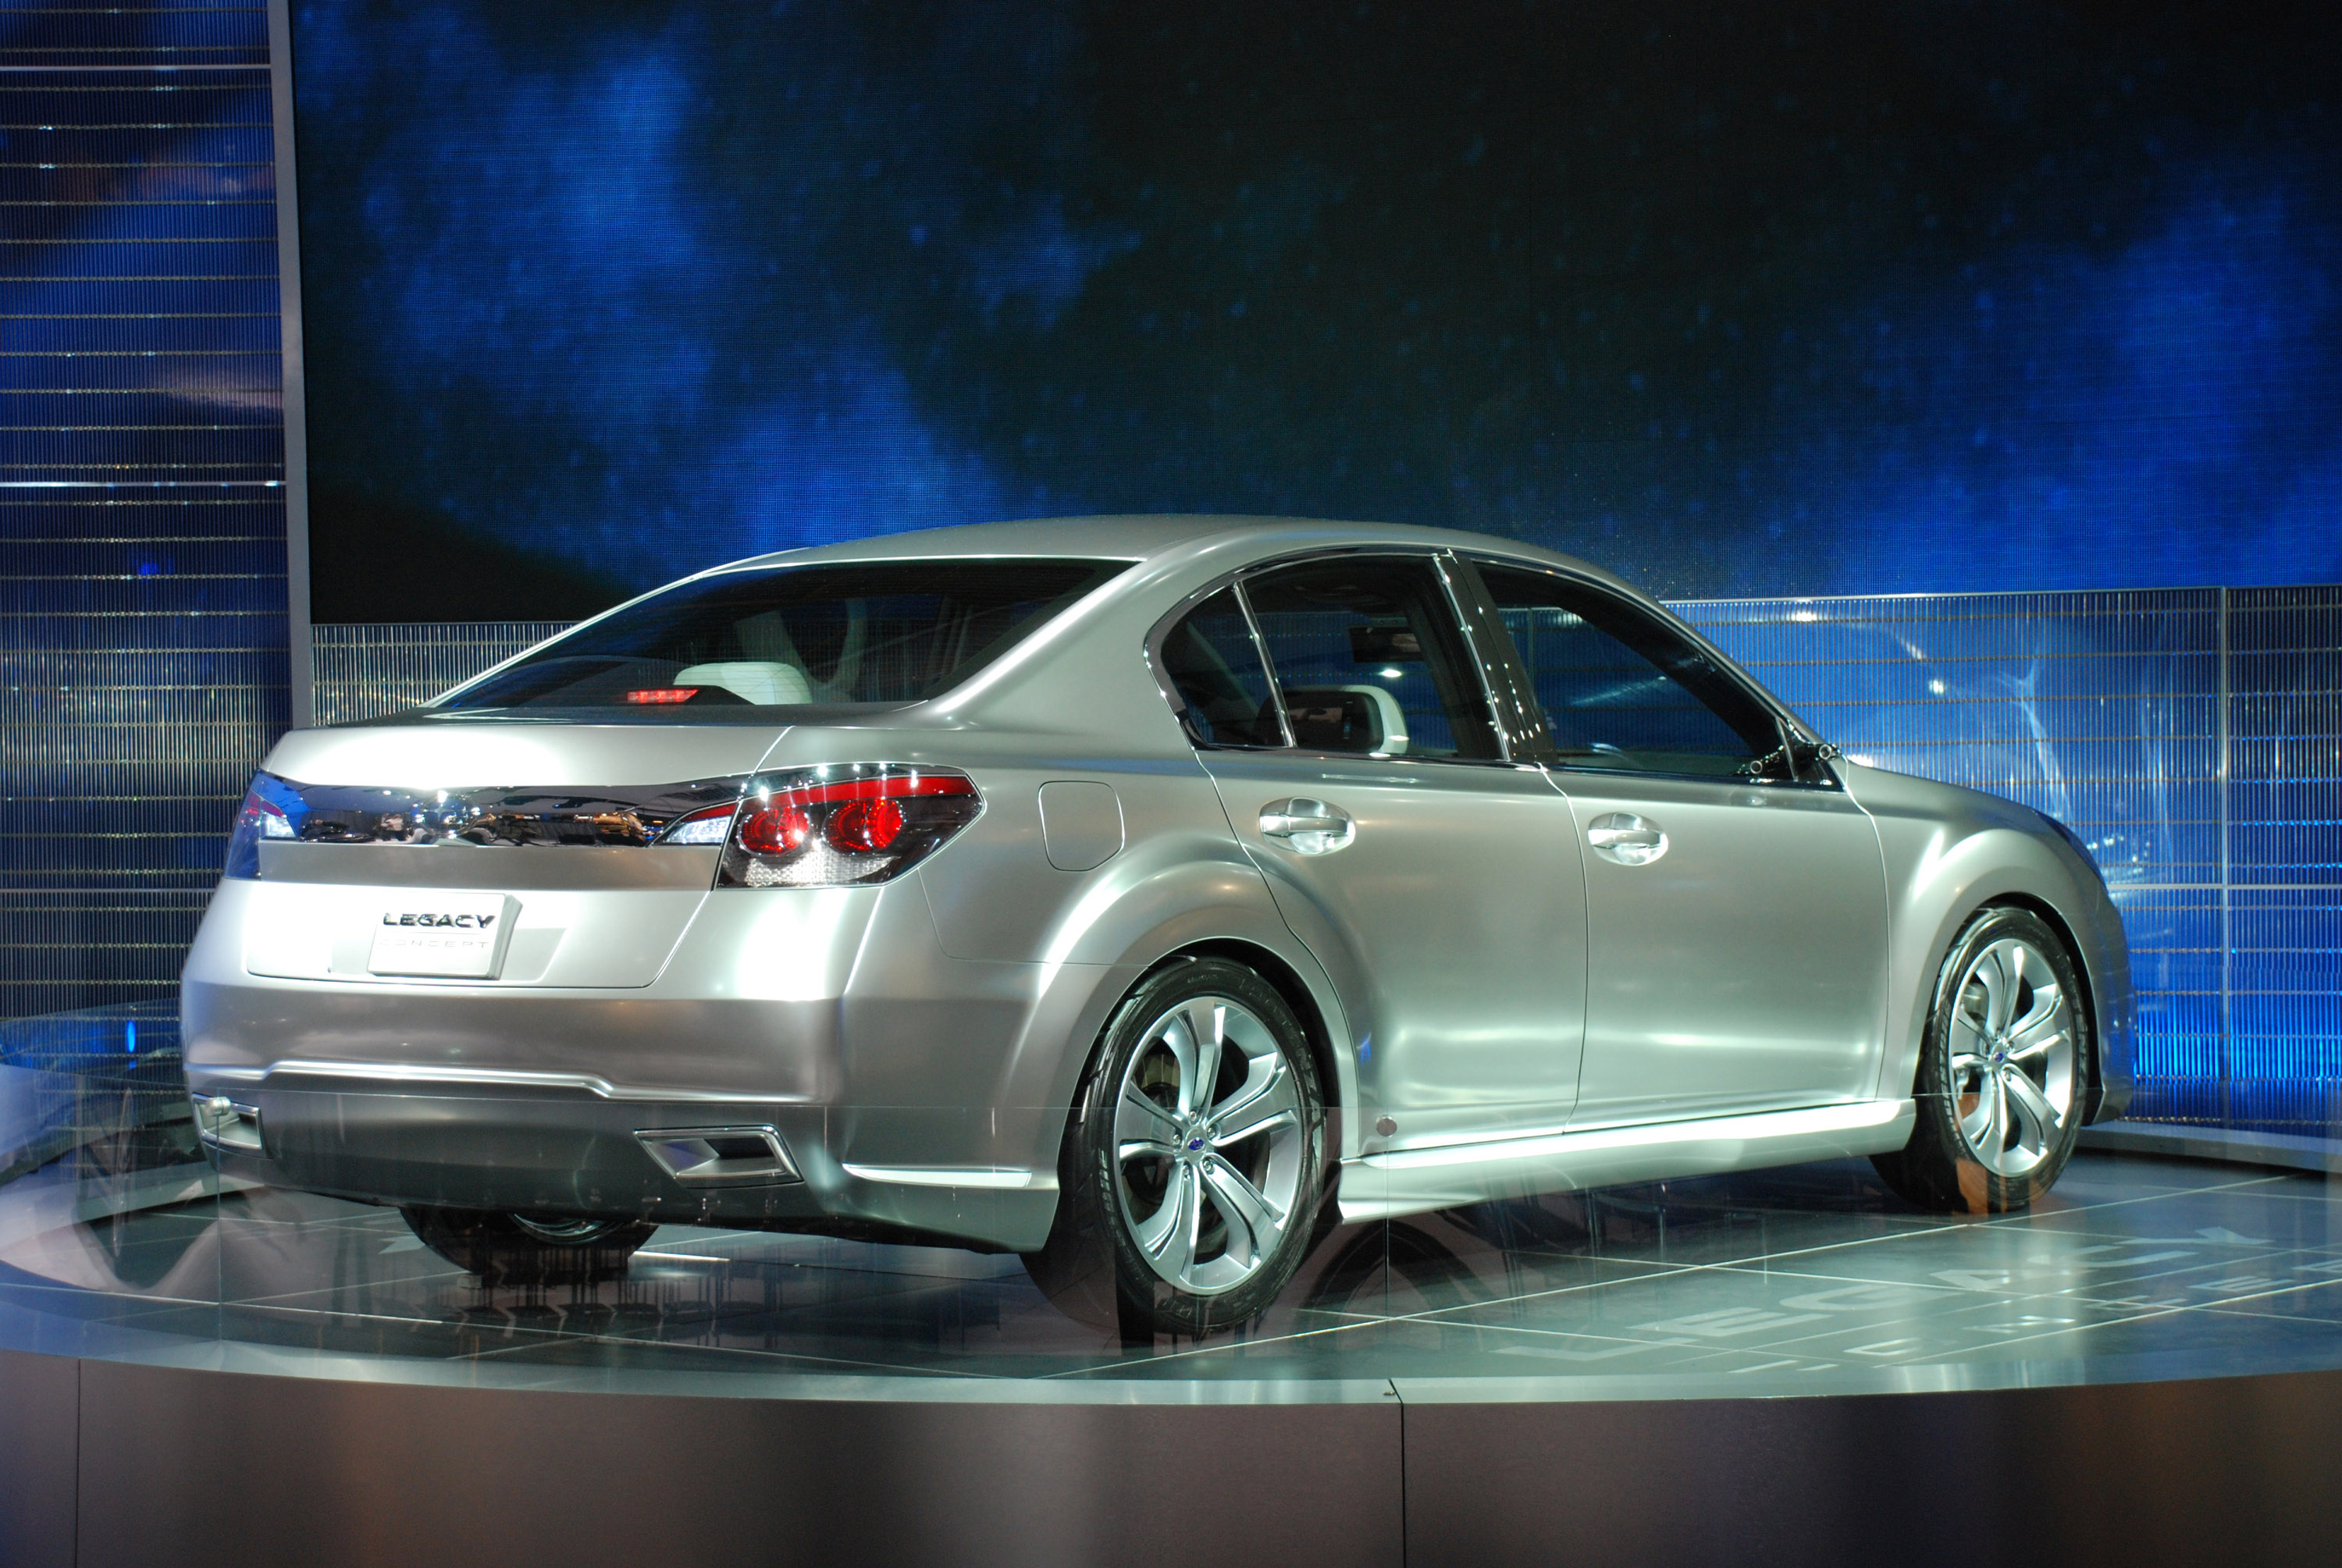 Subaru legacy concept 2009 hd pictures automobilesreview thumbnail image 1 of this gallery thumbnail image 2 of this gallery vanachro Image collections